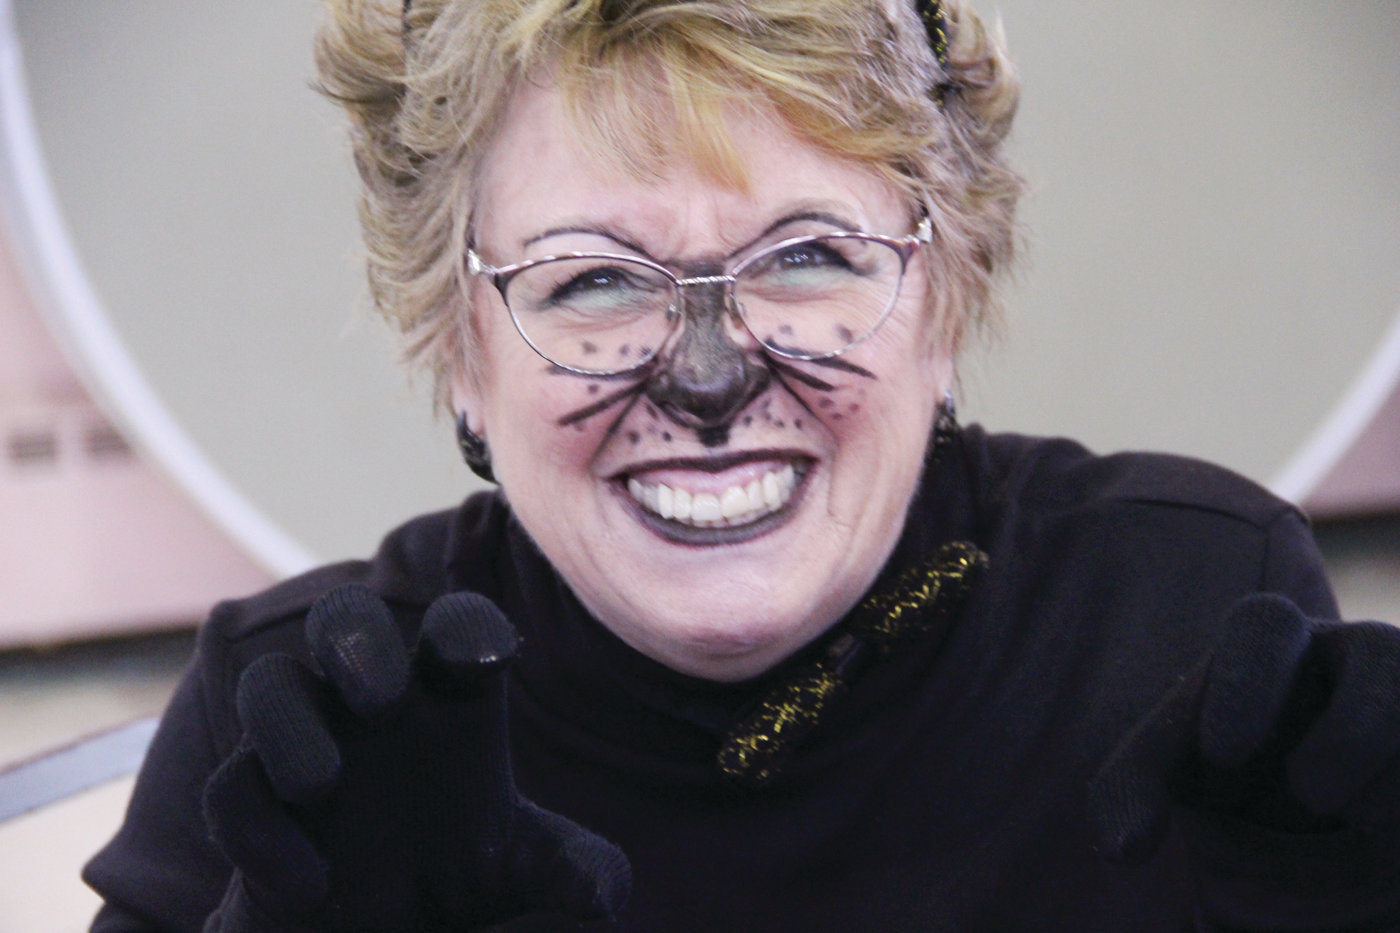 CAT'S MEOW:  Betty Toye neither bared her fangs nor showed her claws, but she had a smile to purr for.